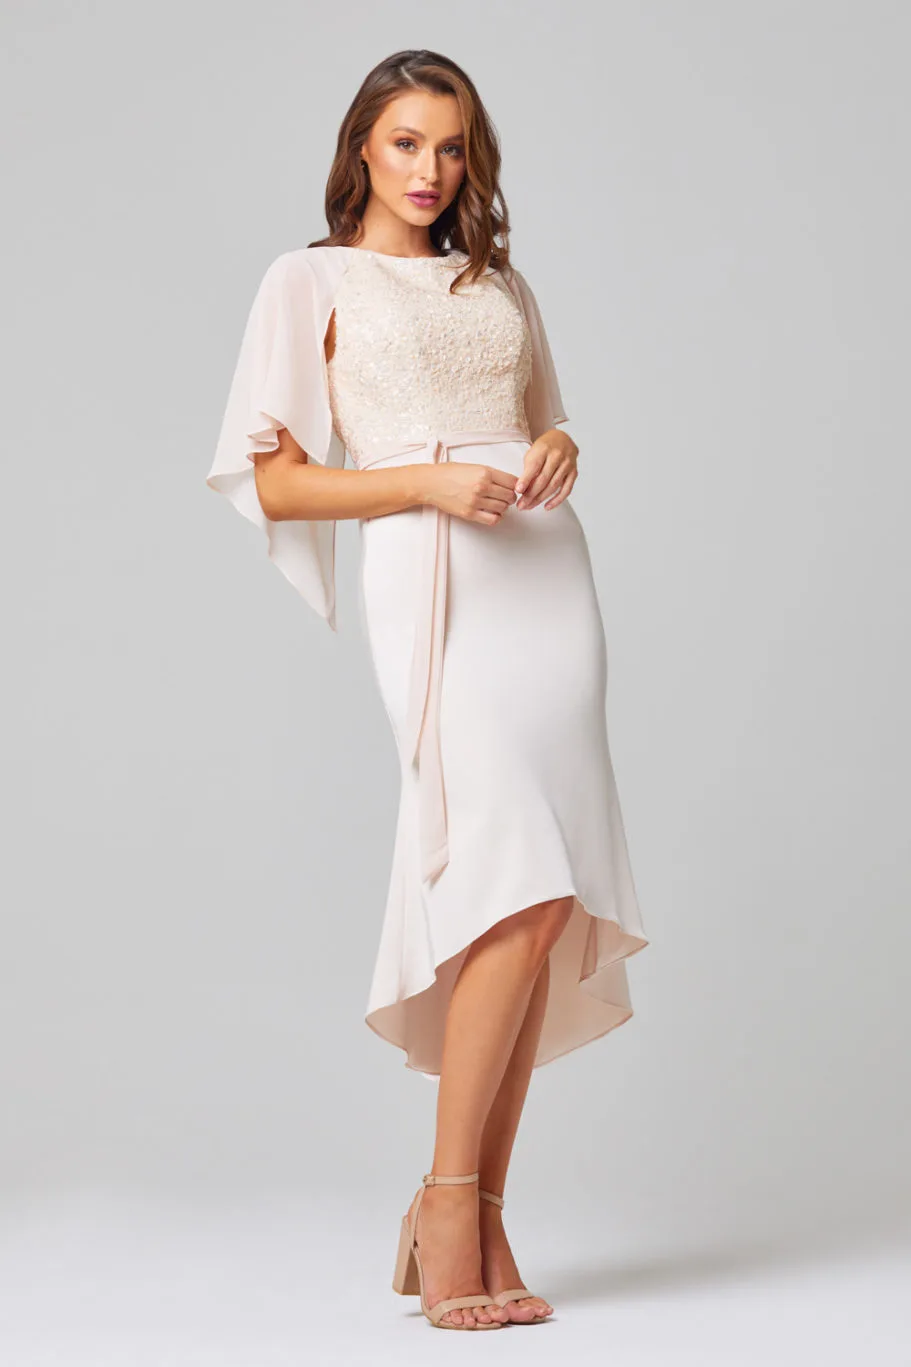 Kate Cocktail Dress by Tania Olsen - Pearl Pink